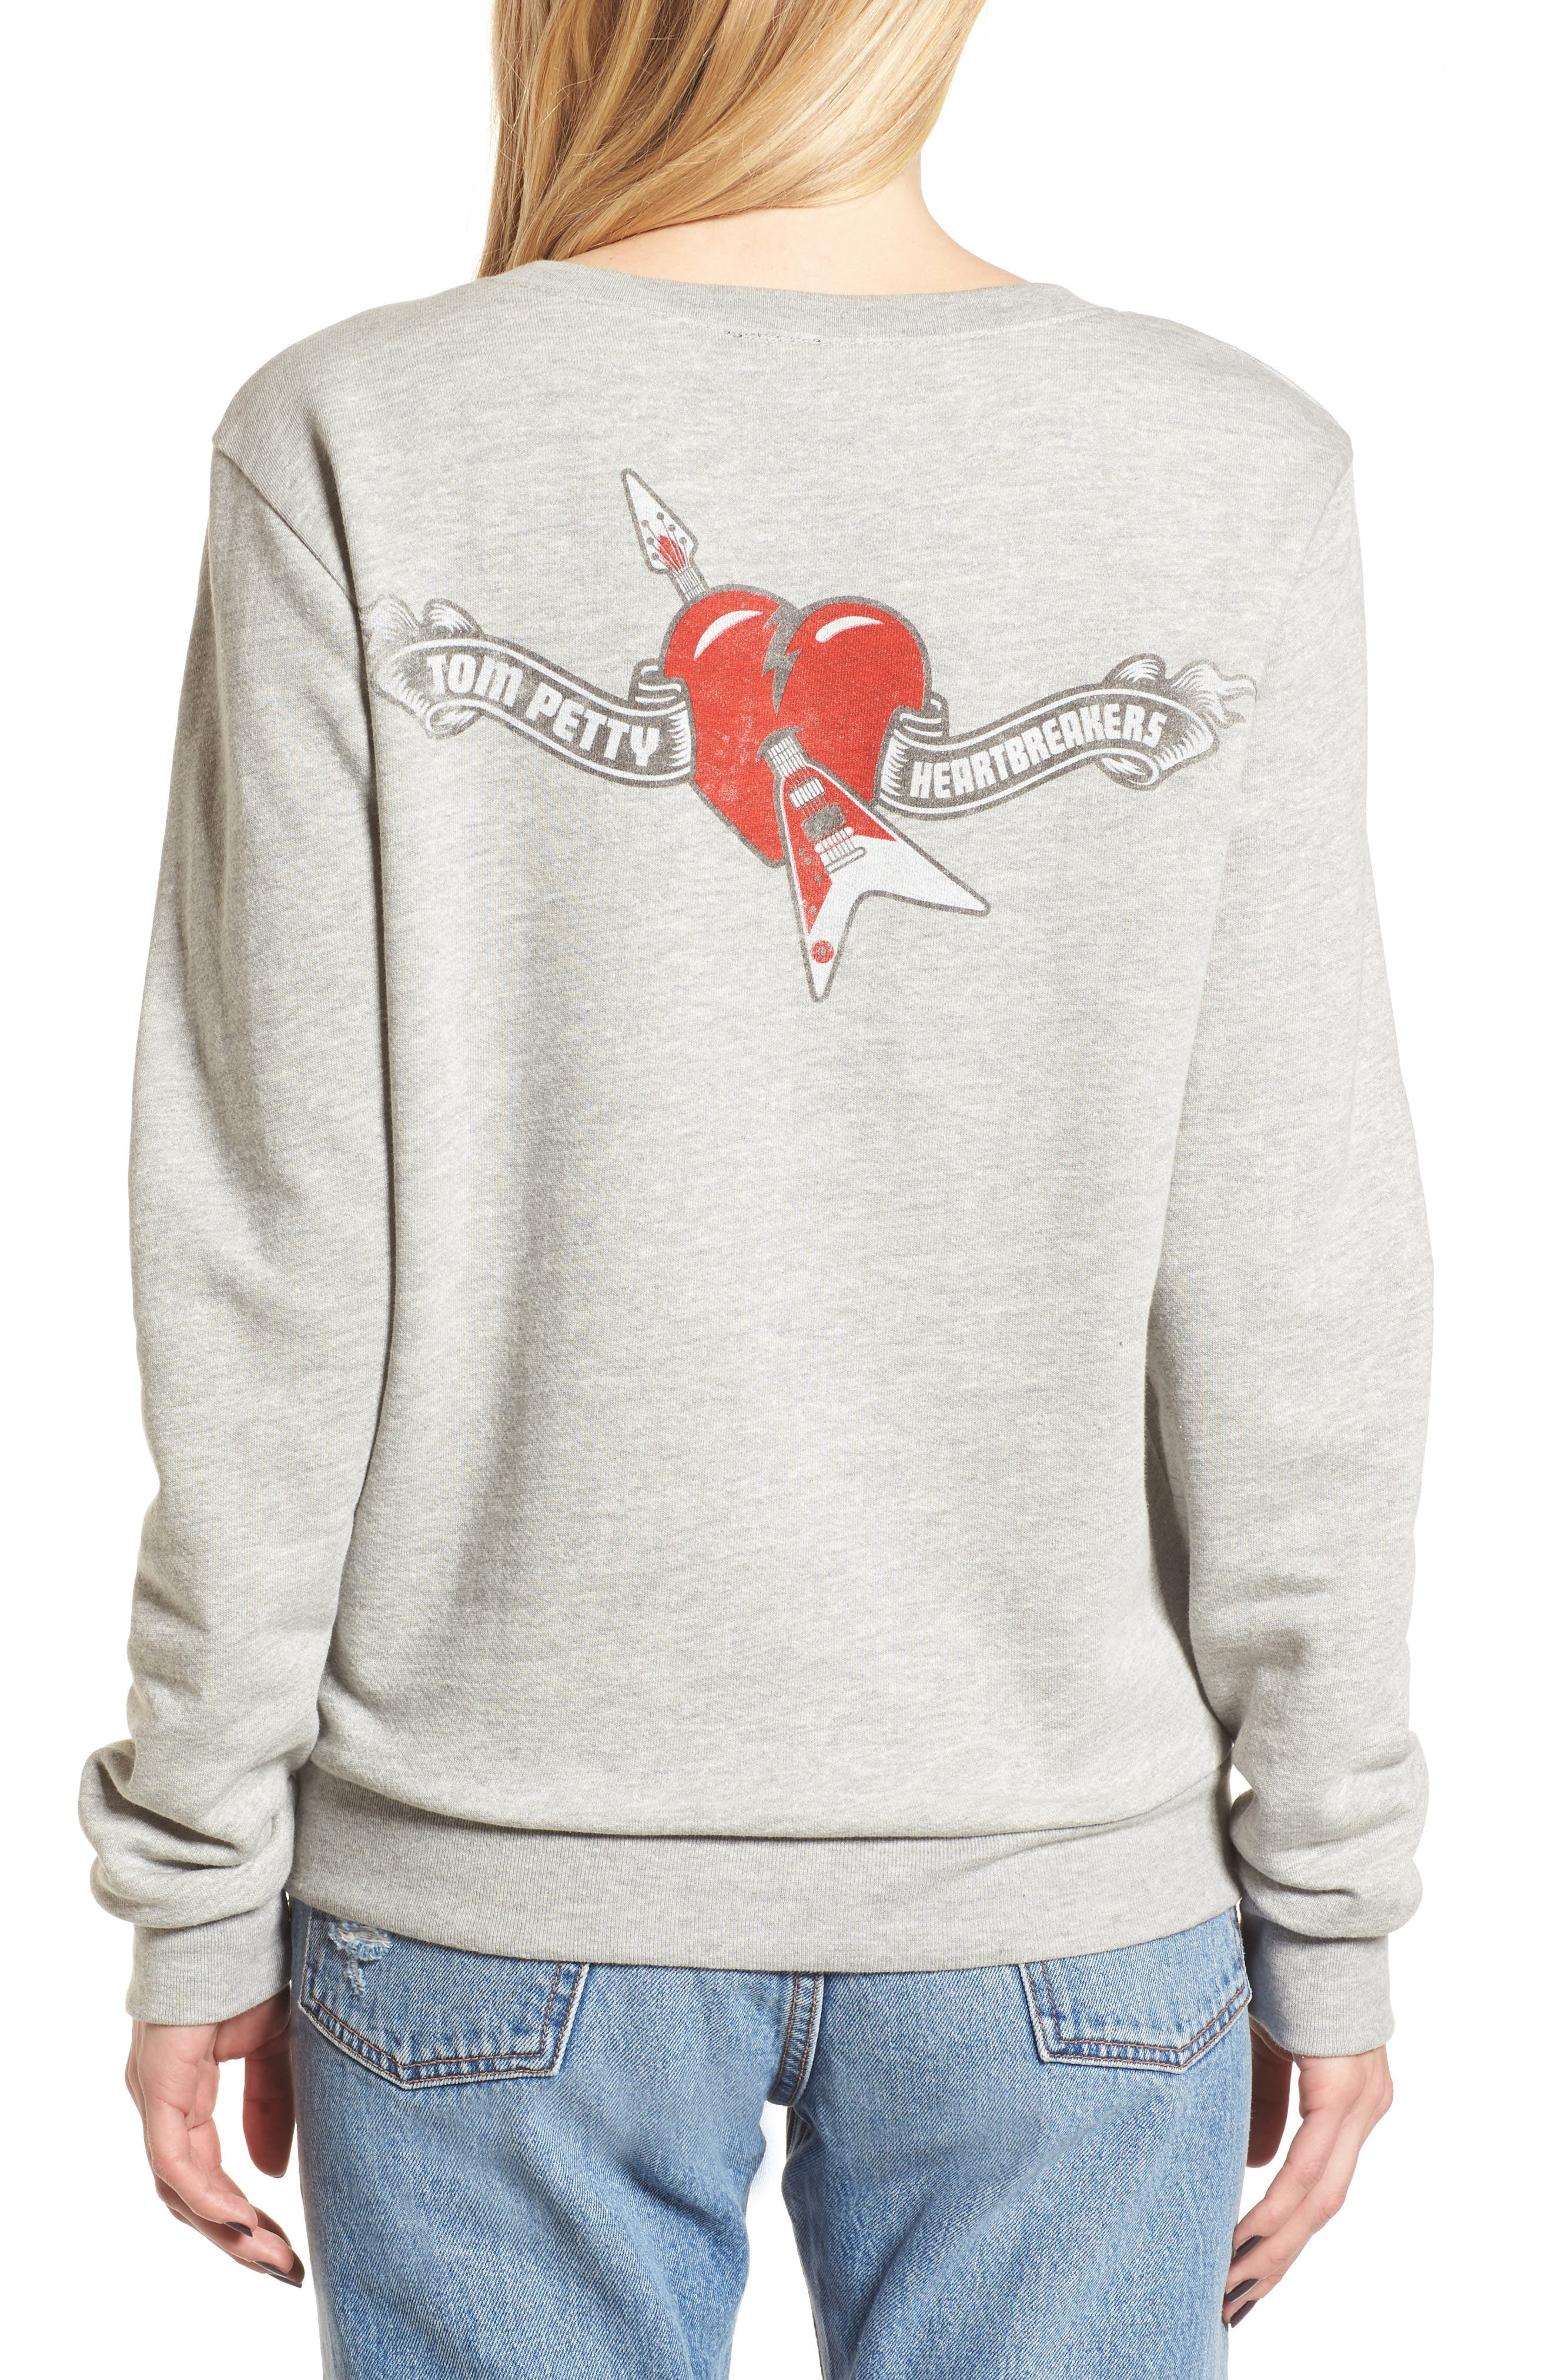 Tom Petty and the Heartbreakers Sweatshirt,                             Alternate thumbnail 2, color,                             020